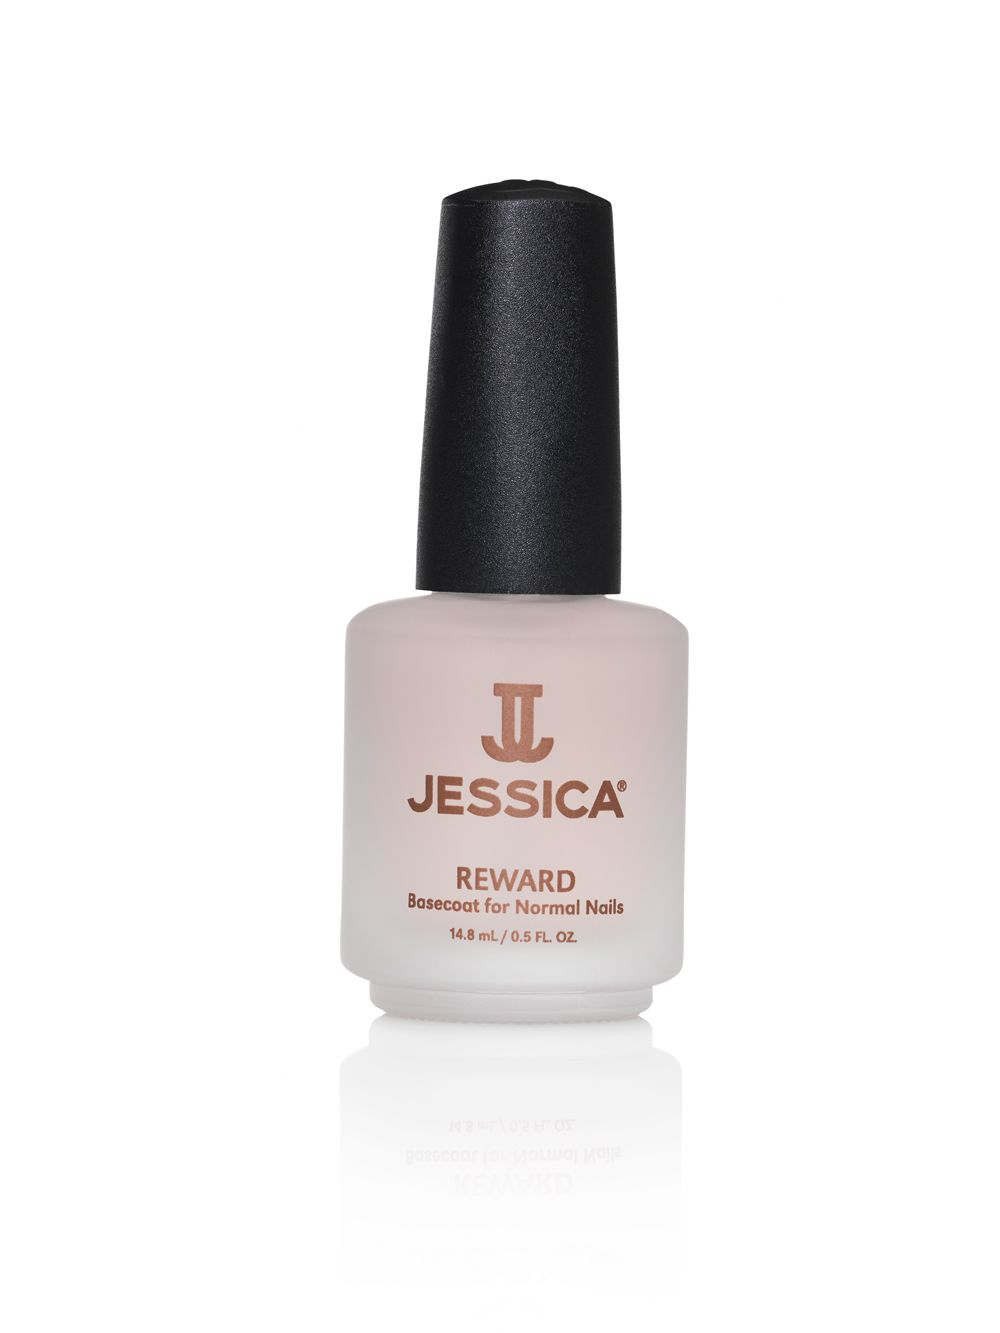 Jessica Cosmetics Reward